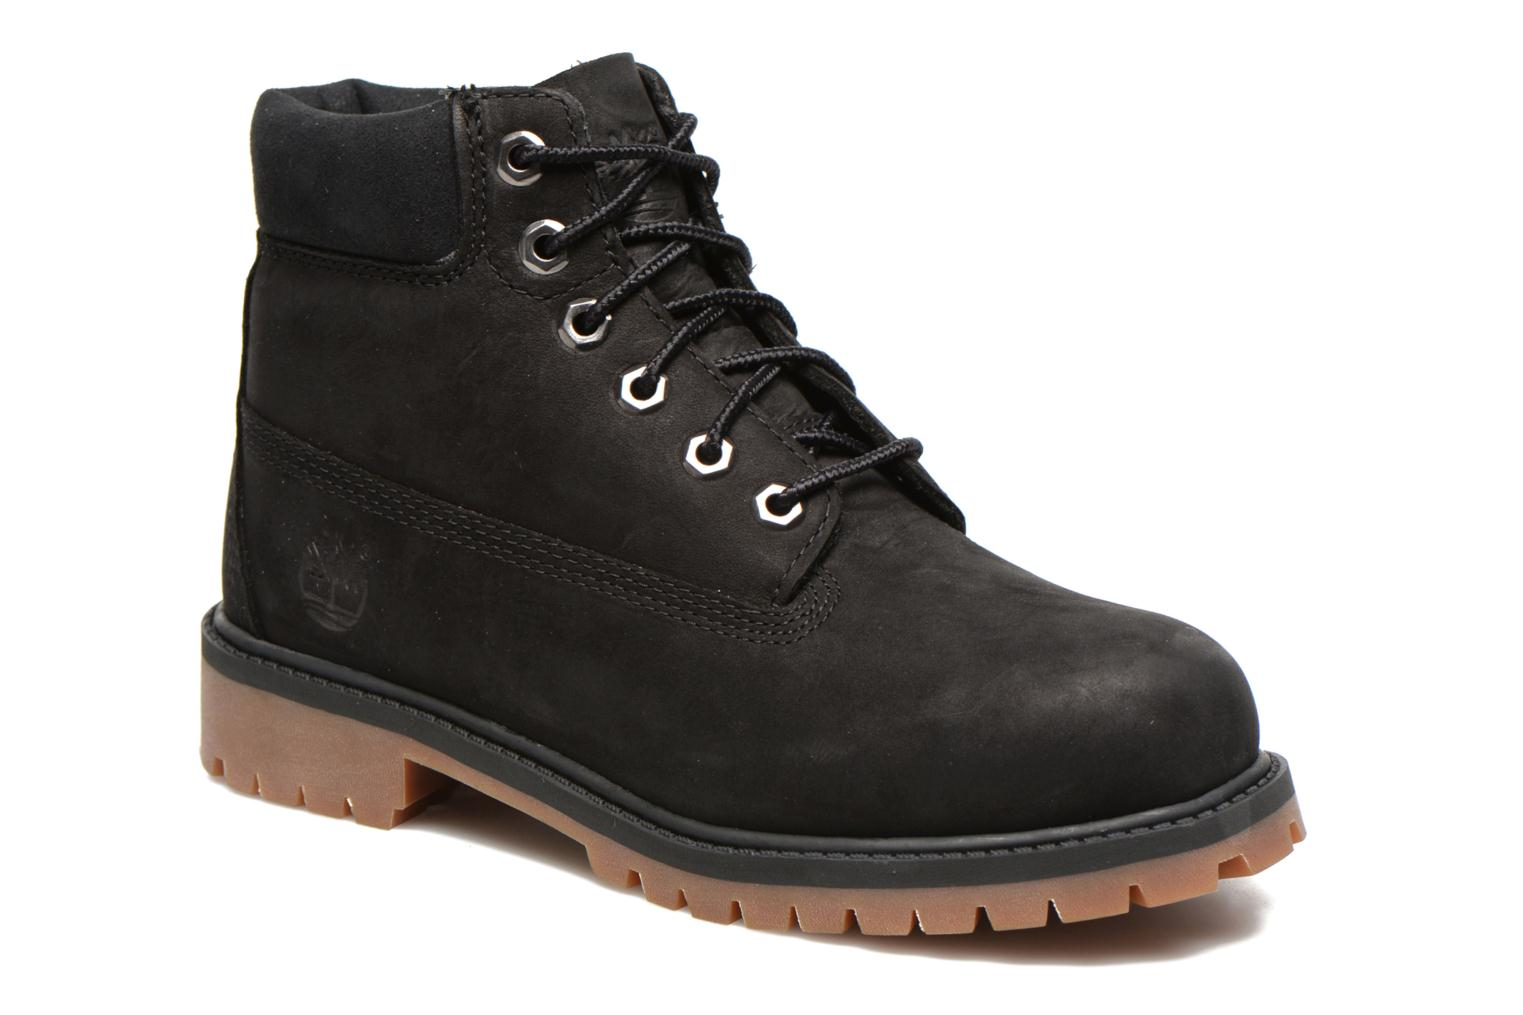 6 In Premium WP Boot Black